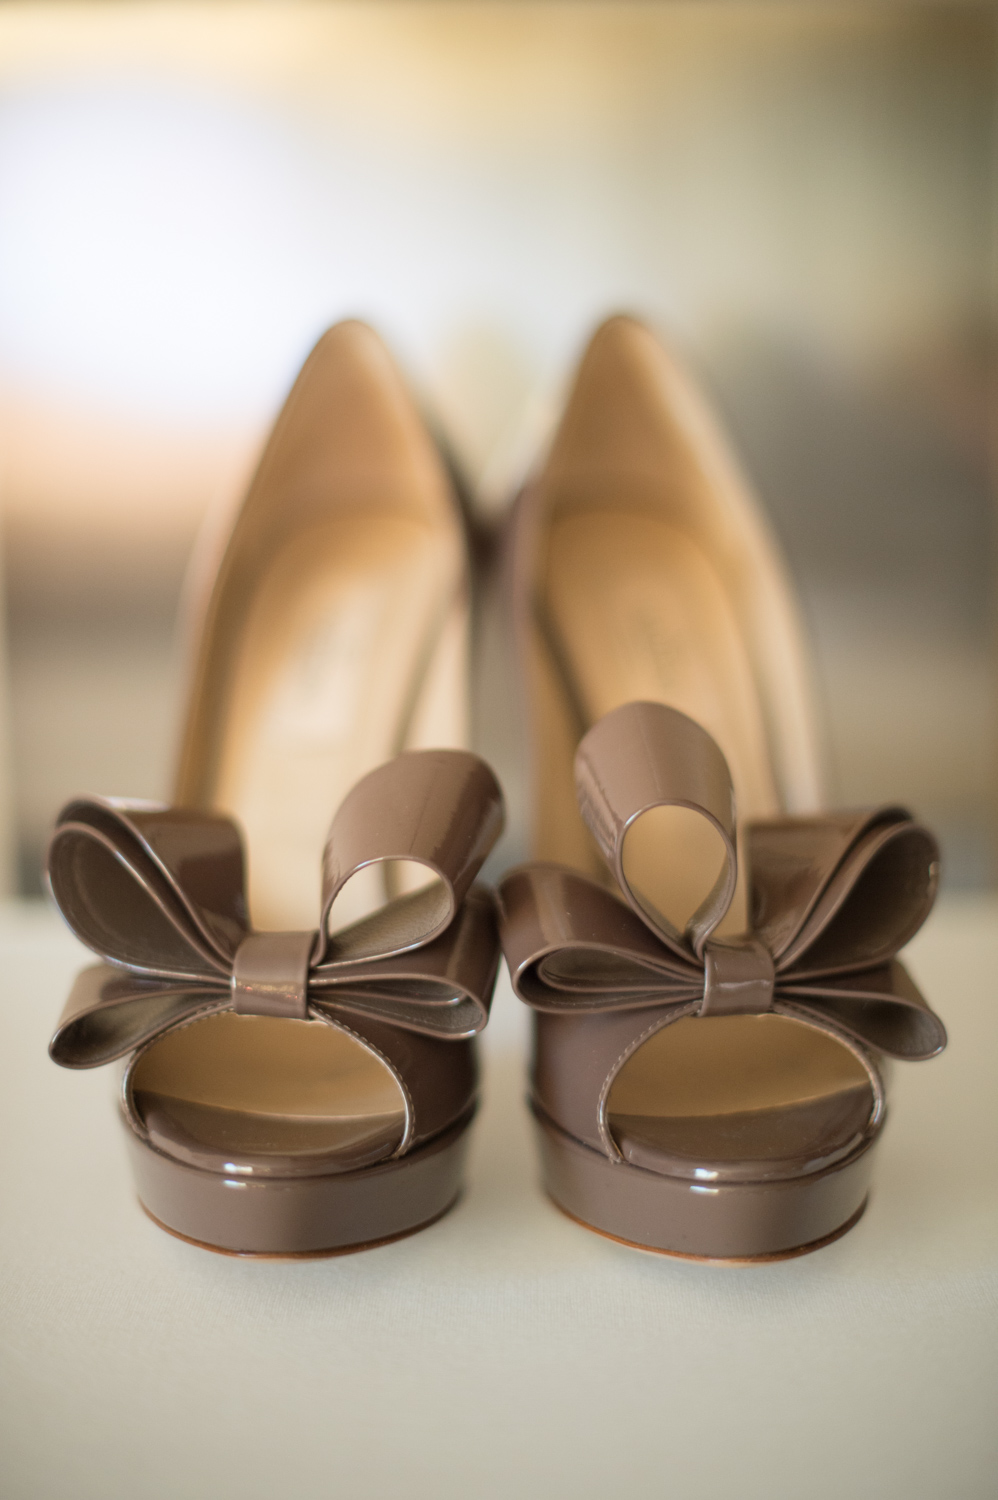 brown patent leather pumps with bows at the toe, neutral bridal shoes